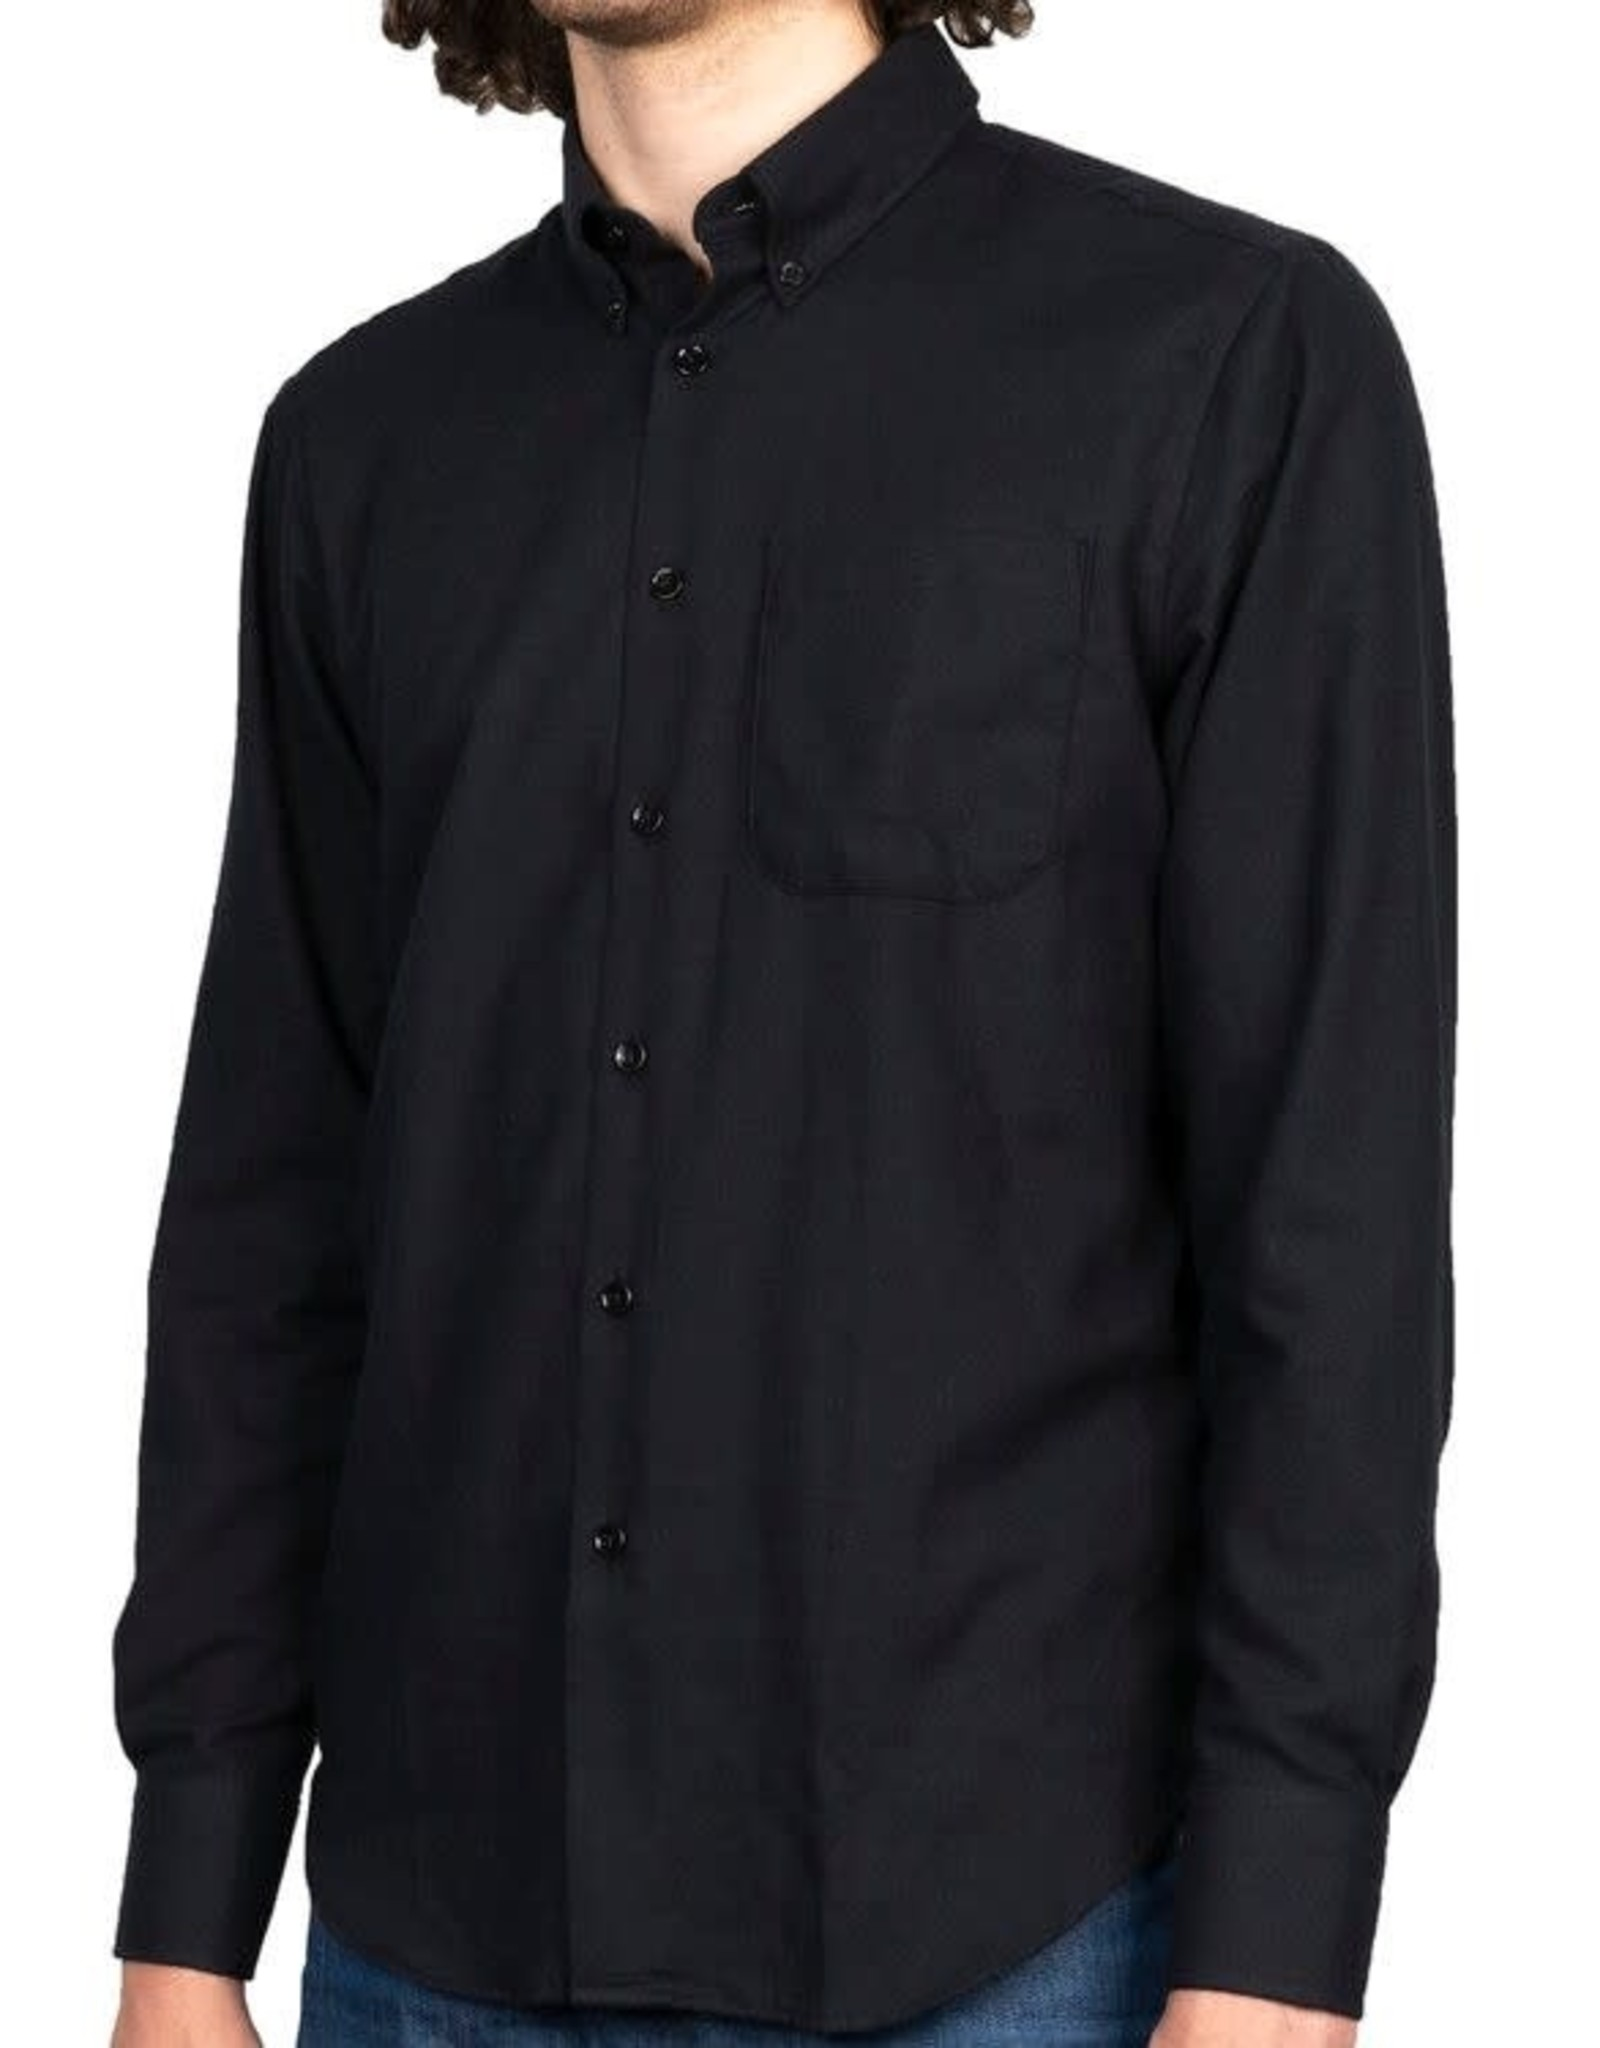 Naked and Famous Easy shirt AH2021 Naked & Famous Soft Twill Black